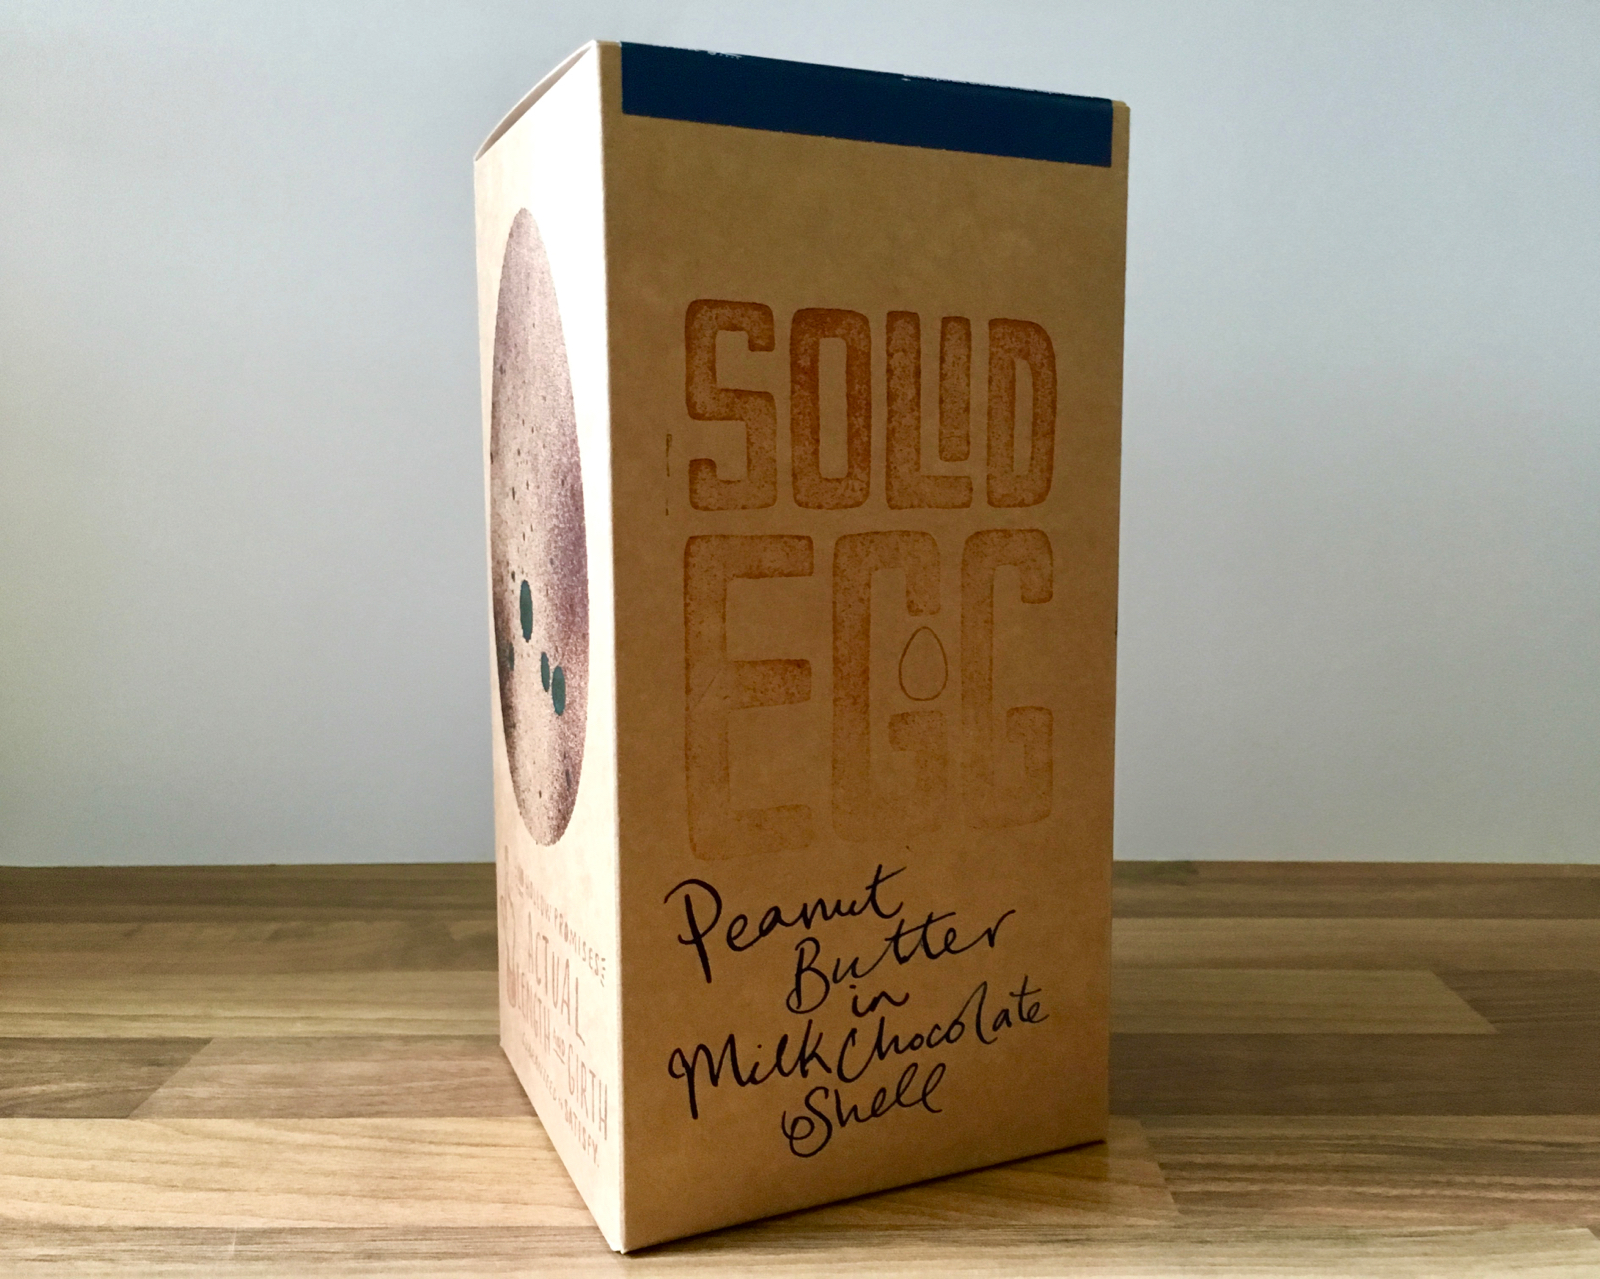 The Solid Egg hand-illustrated packaging